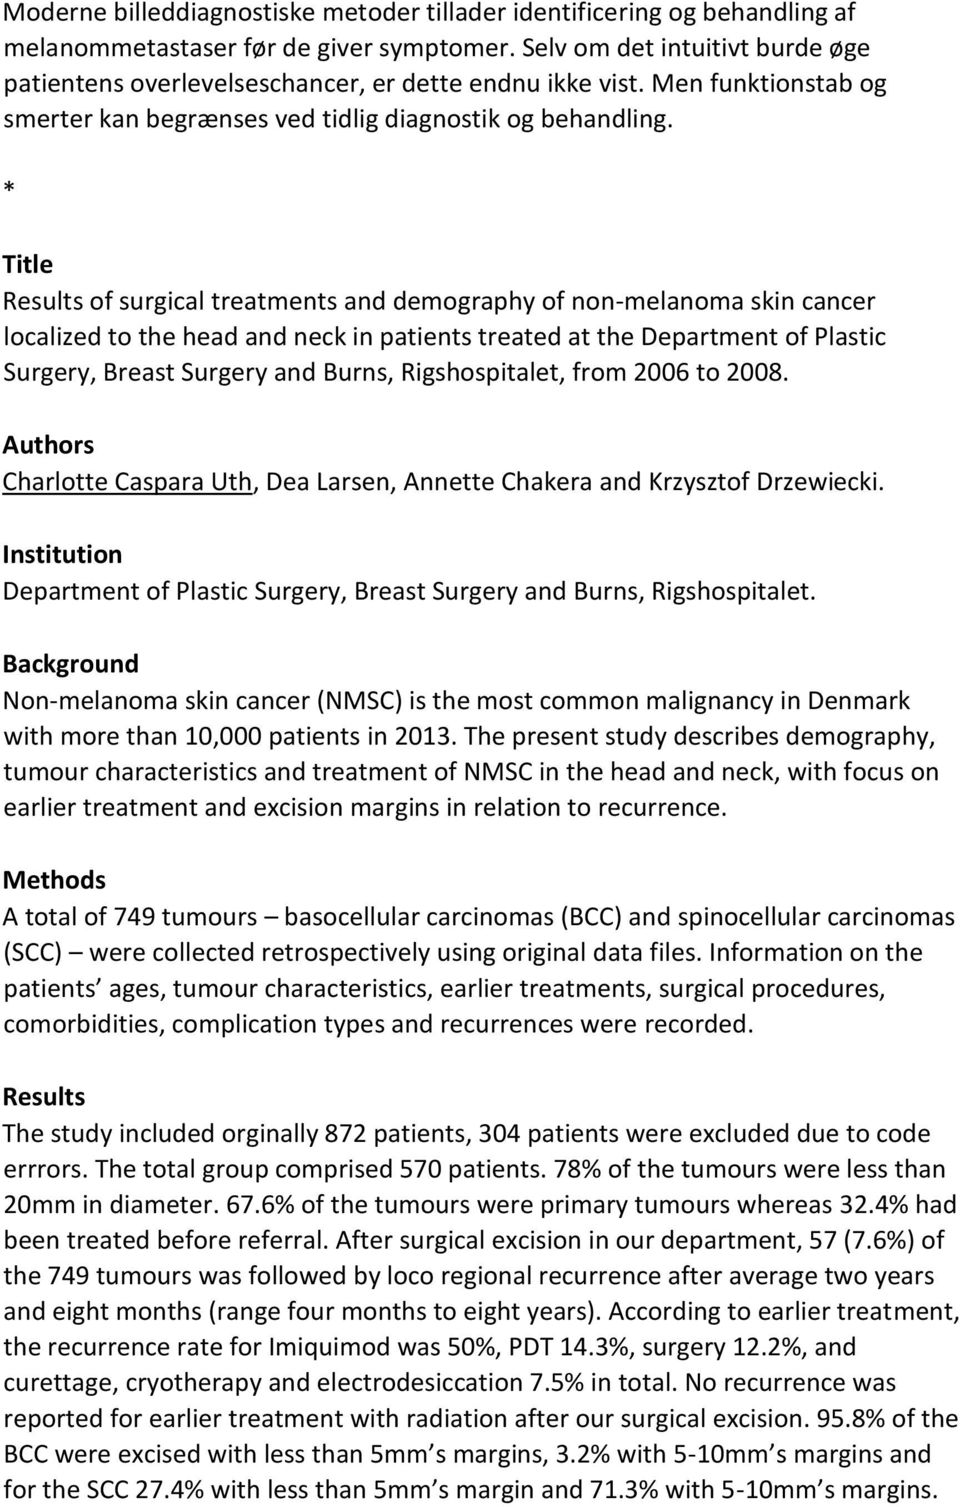 Title Results of surgical treatments and demography of non-melanoma skin cancer localized to the head and neck in patients treated at the Department of Plastic Surgery, Breast Surgery and Burns,